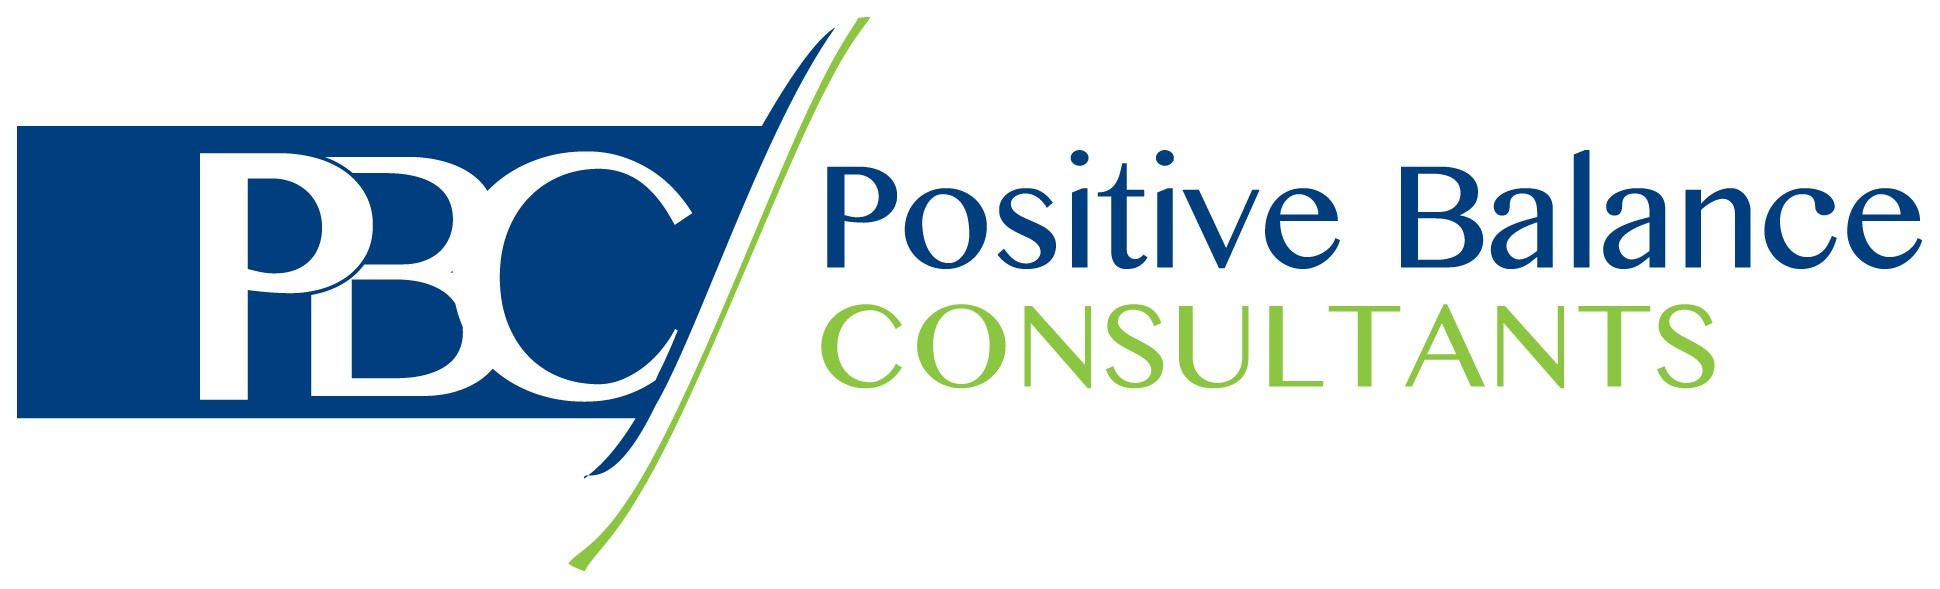 Positive Balance Consultants